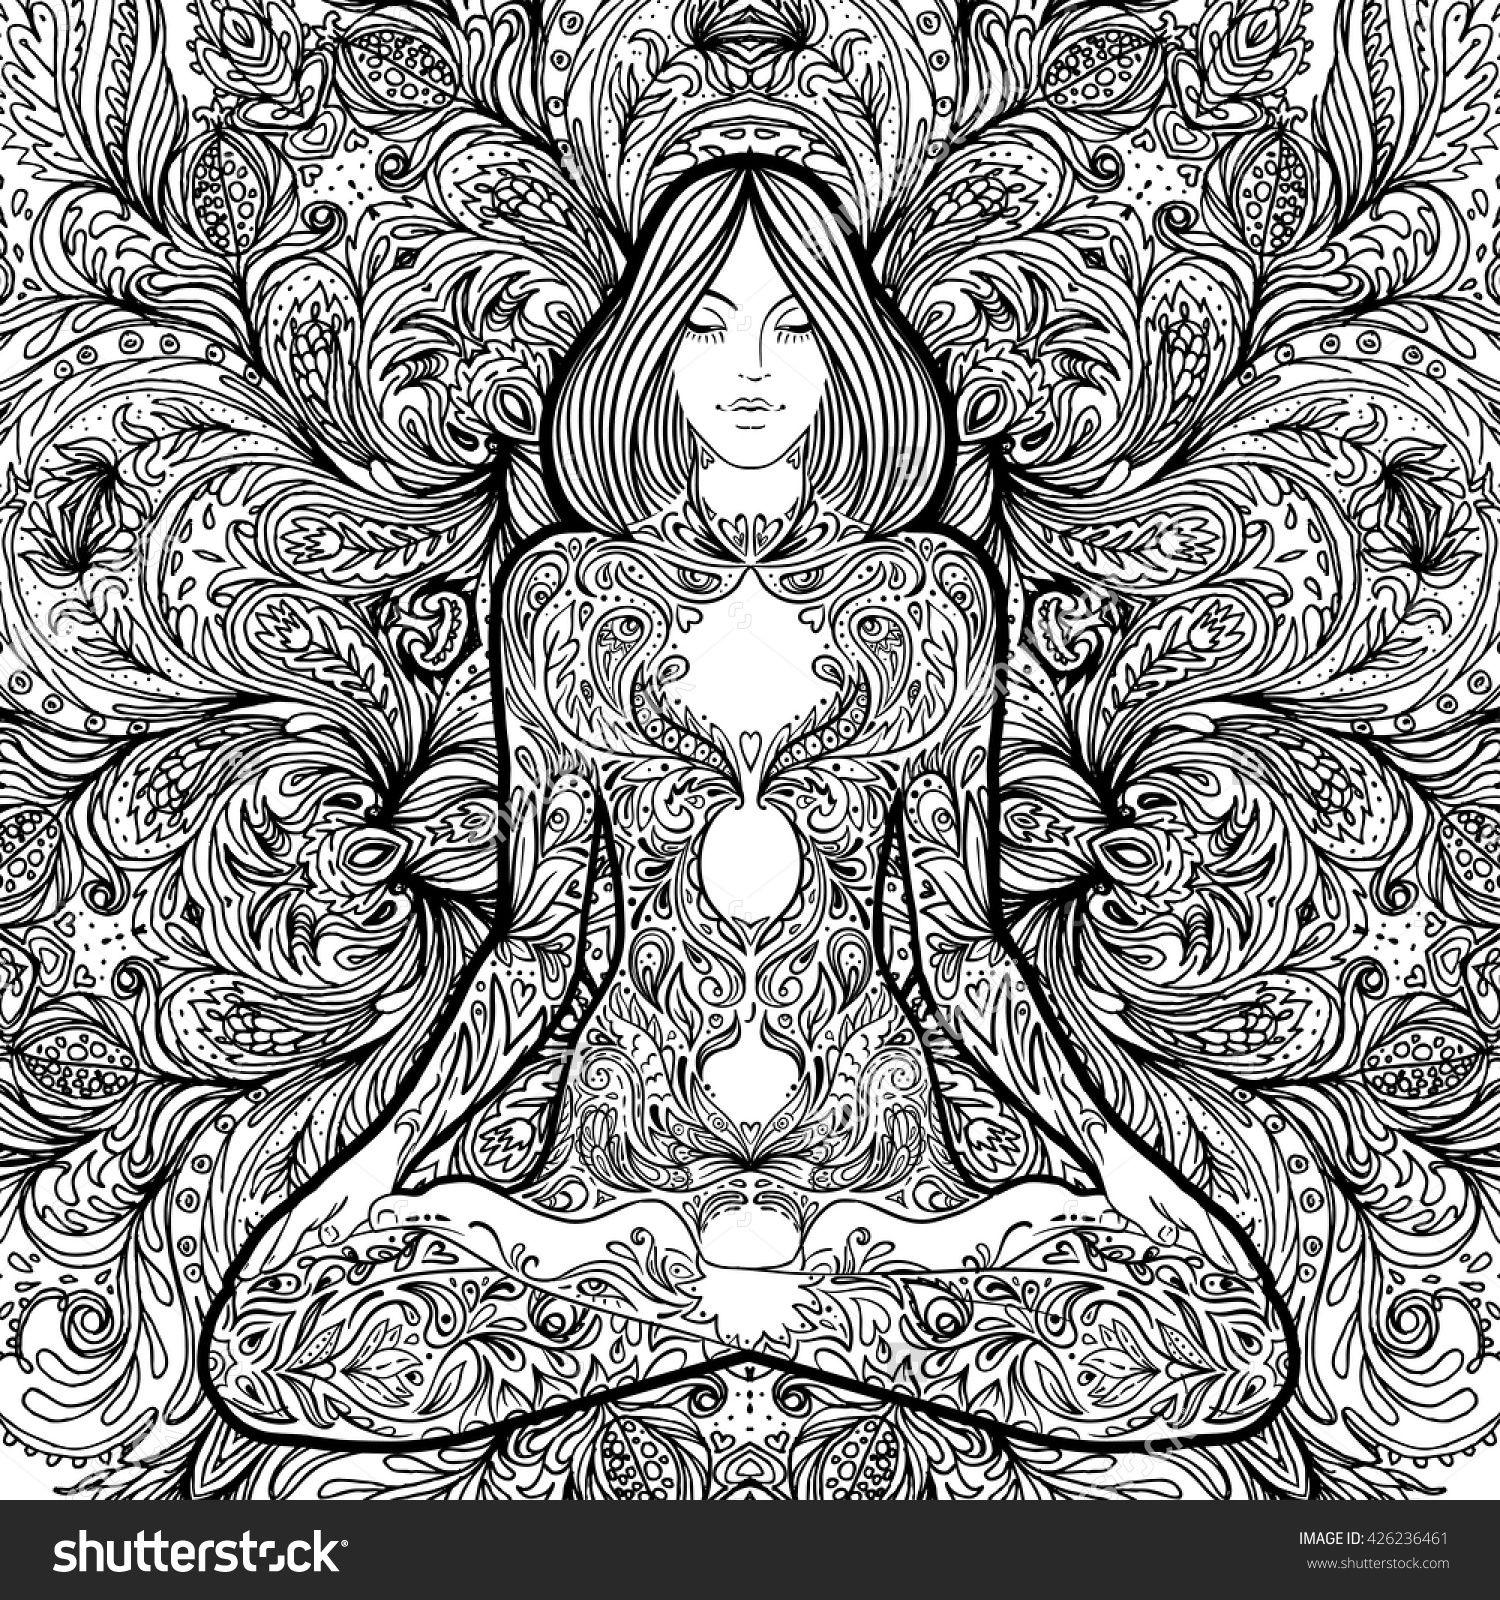 Lotus designs coloring book - Pretty Girl In Lotus Yoga Pose Over Ornate Round Mandala Pattern Decorative Design For Cover T Shirt Yoga Poster Flyer Yoga Coloring Book For Adults